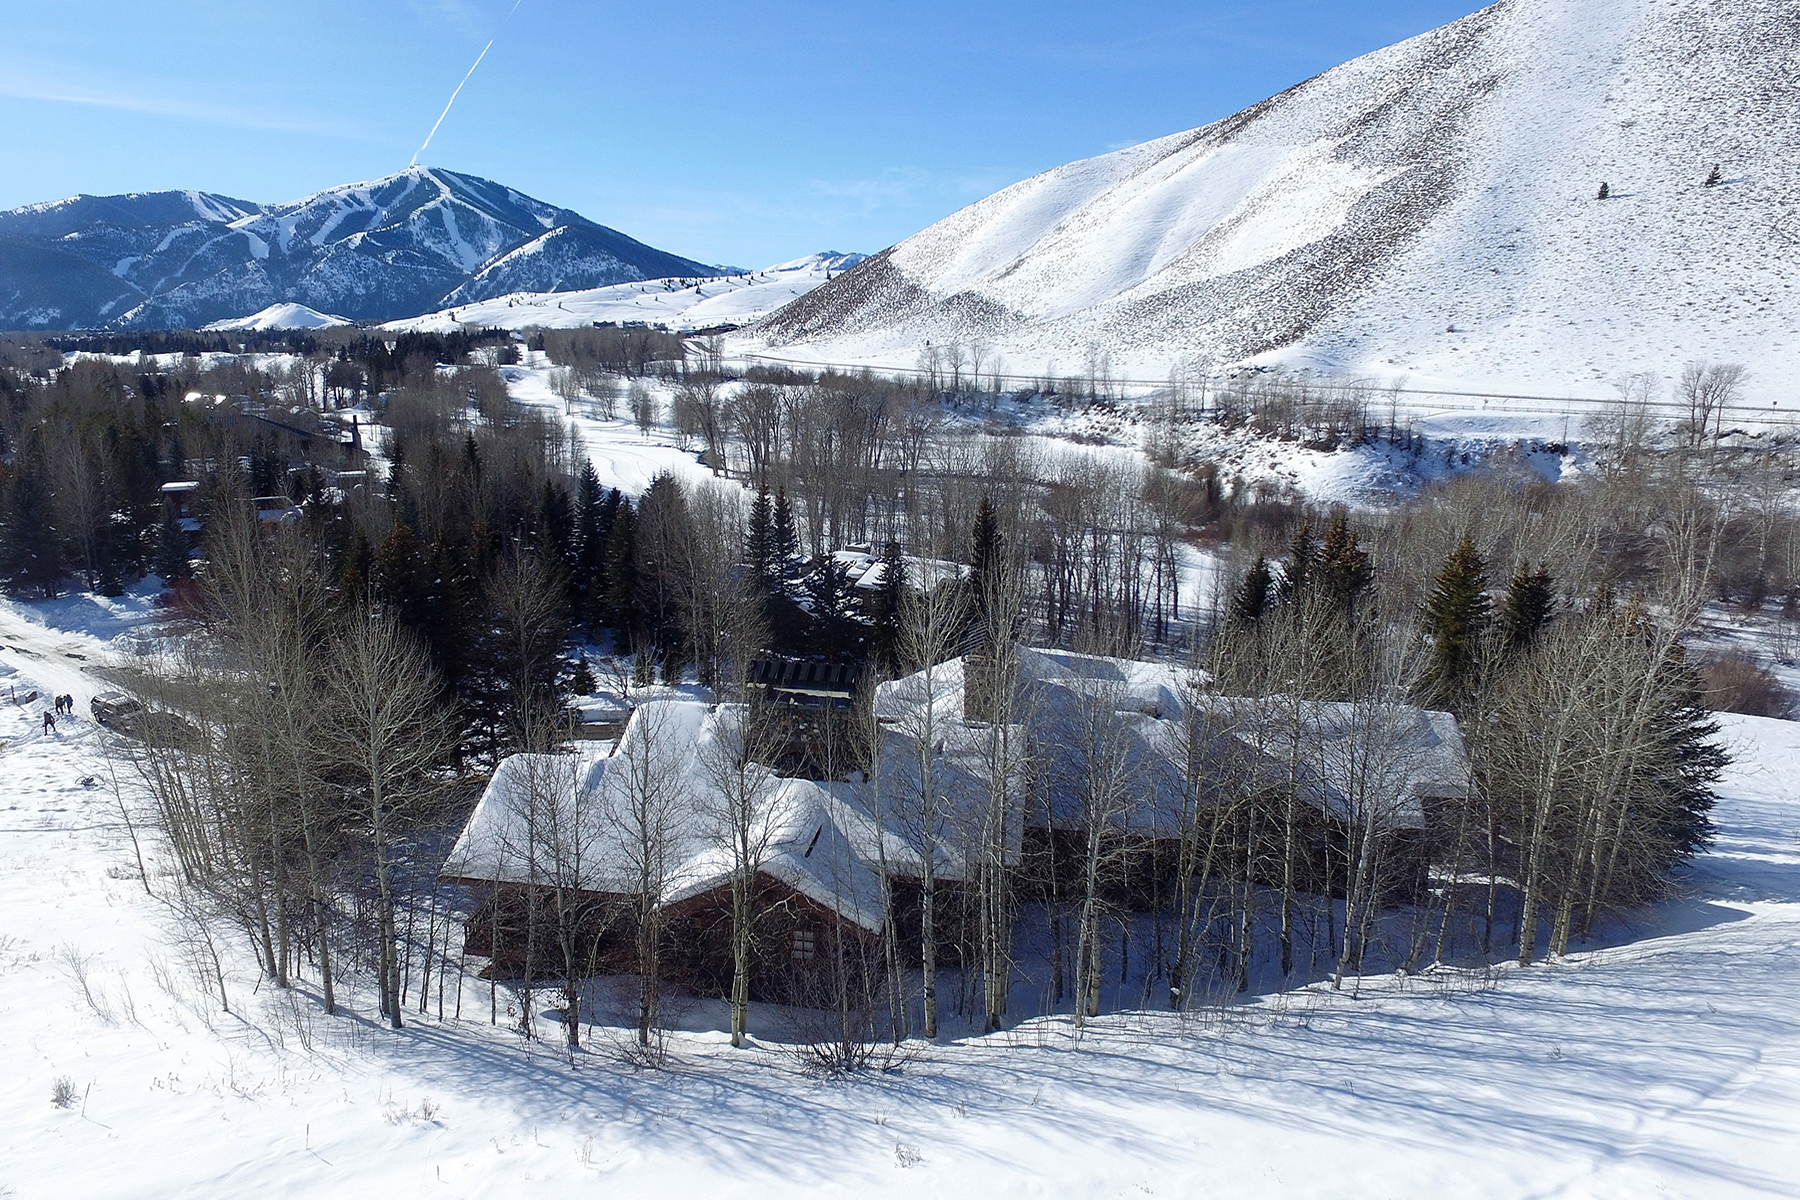 Single Family Home for Active at Grand Fairway Estate 723 Fairway Rd Sun Valley, Idaho 83353 United States